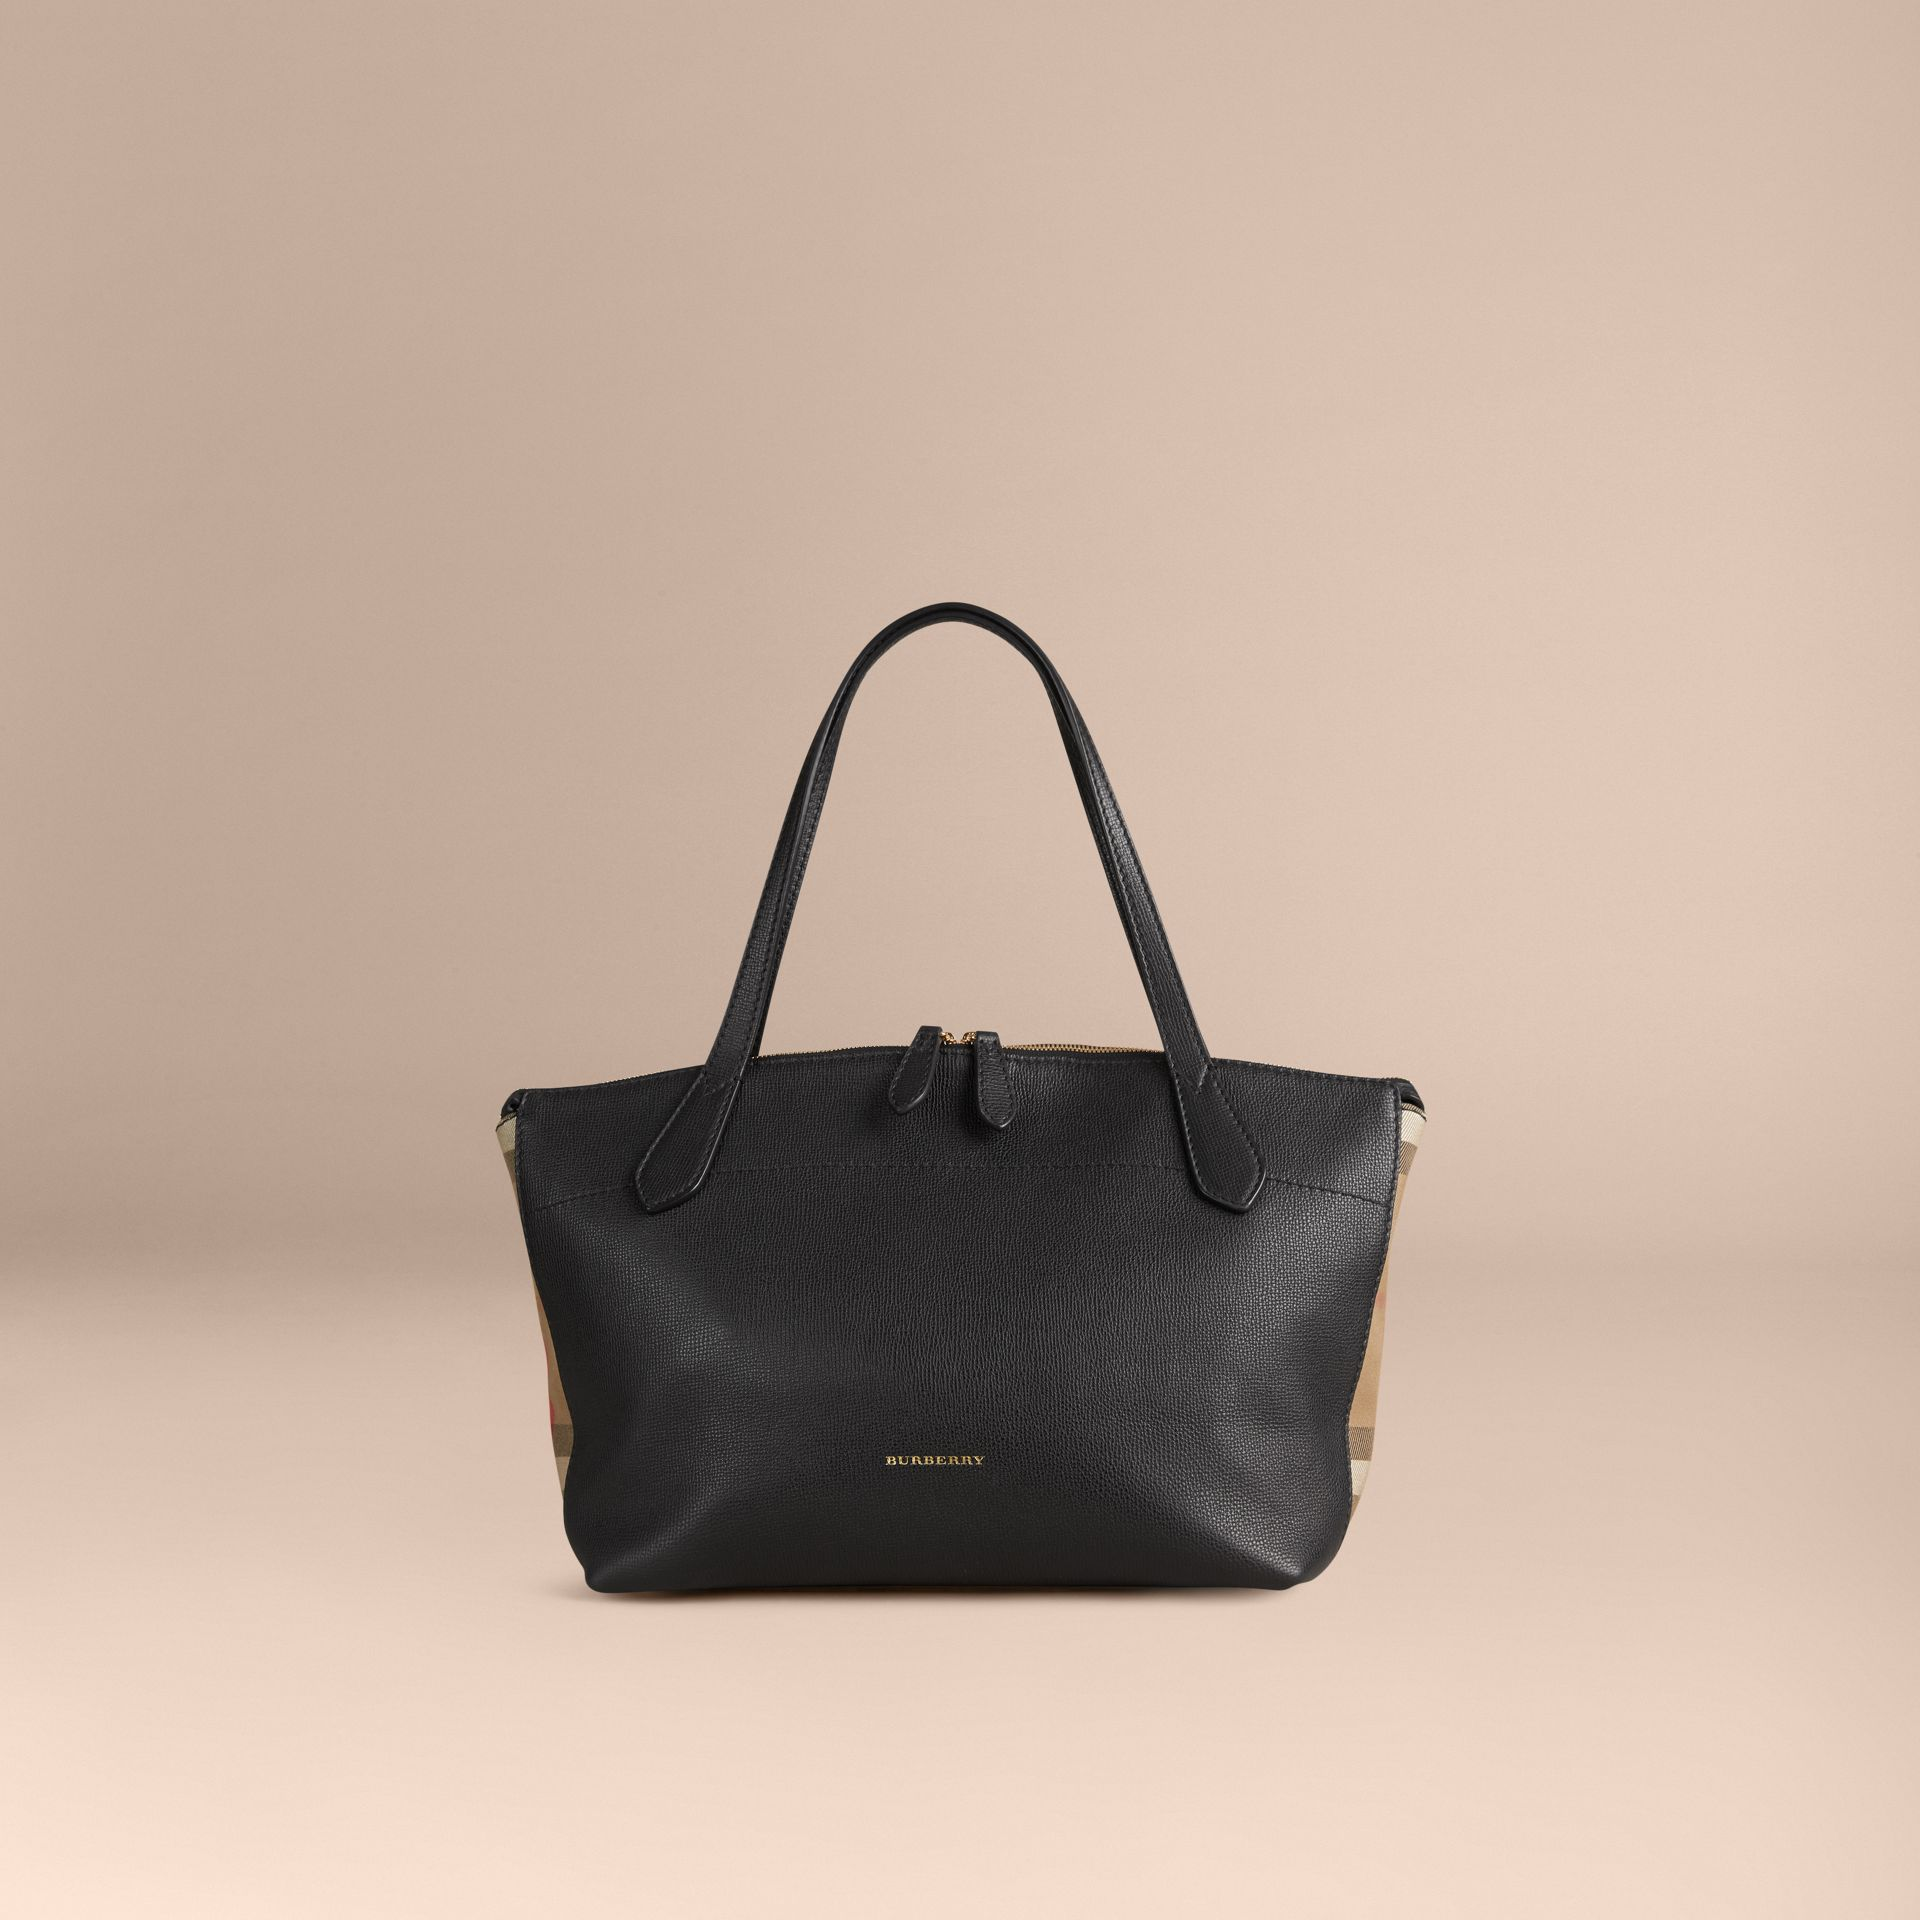 Sac tote medium en cuir et coton House check - Femme | Burberry - photo de la galerie 7